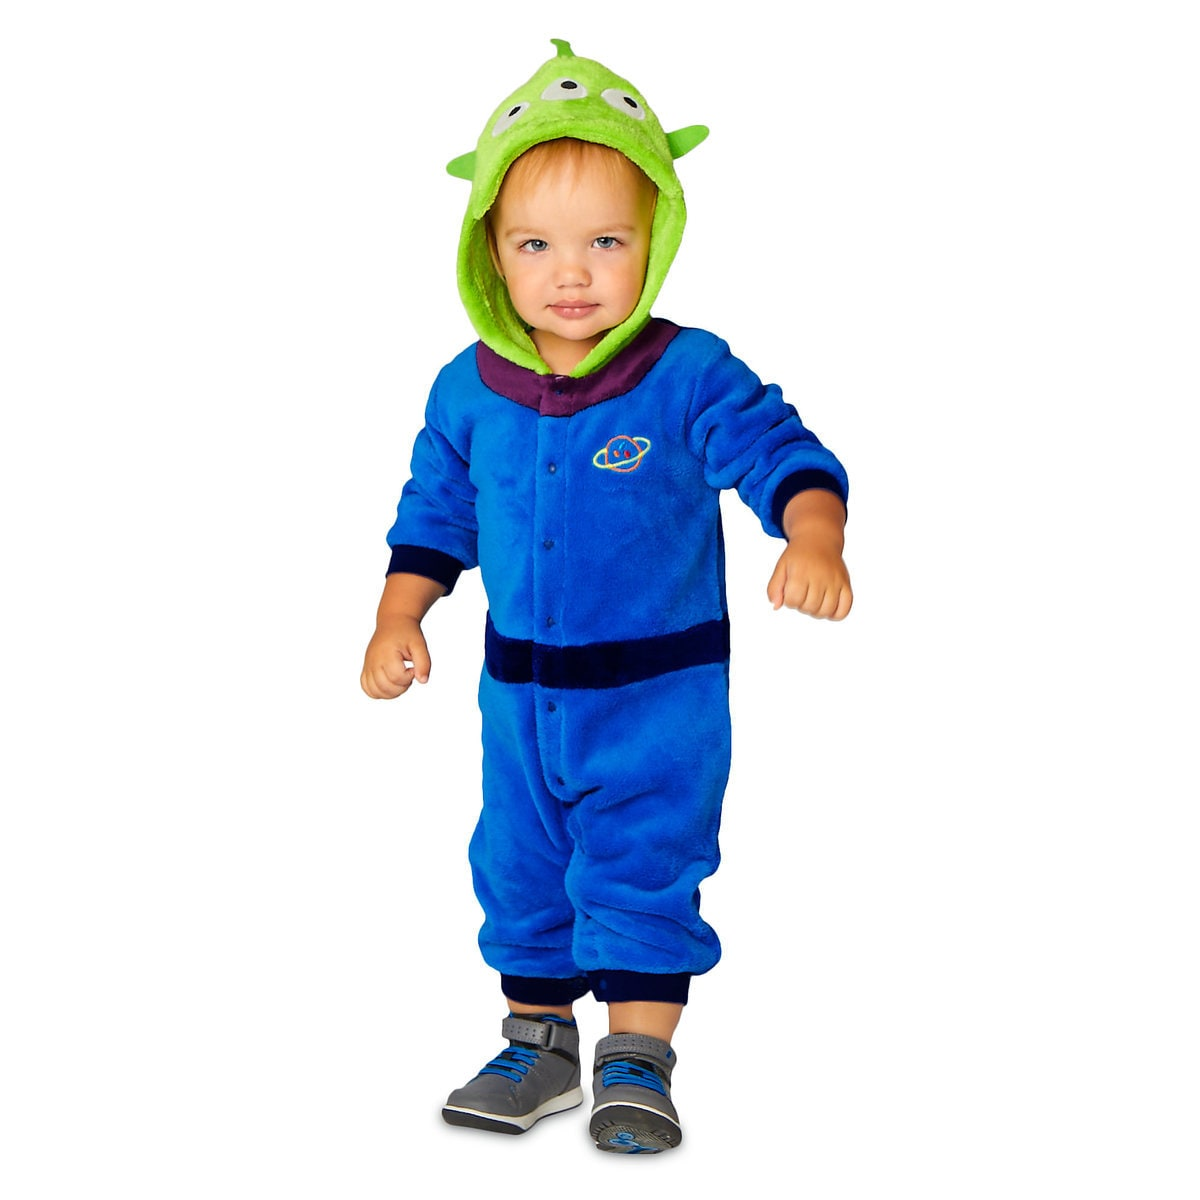 7939f2809 Product Image of Toy Story Alien Fleece Costume Romper for Baby # 1